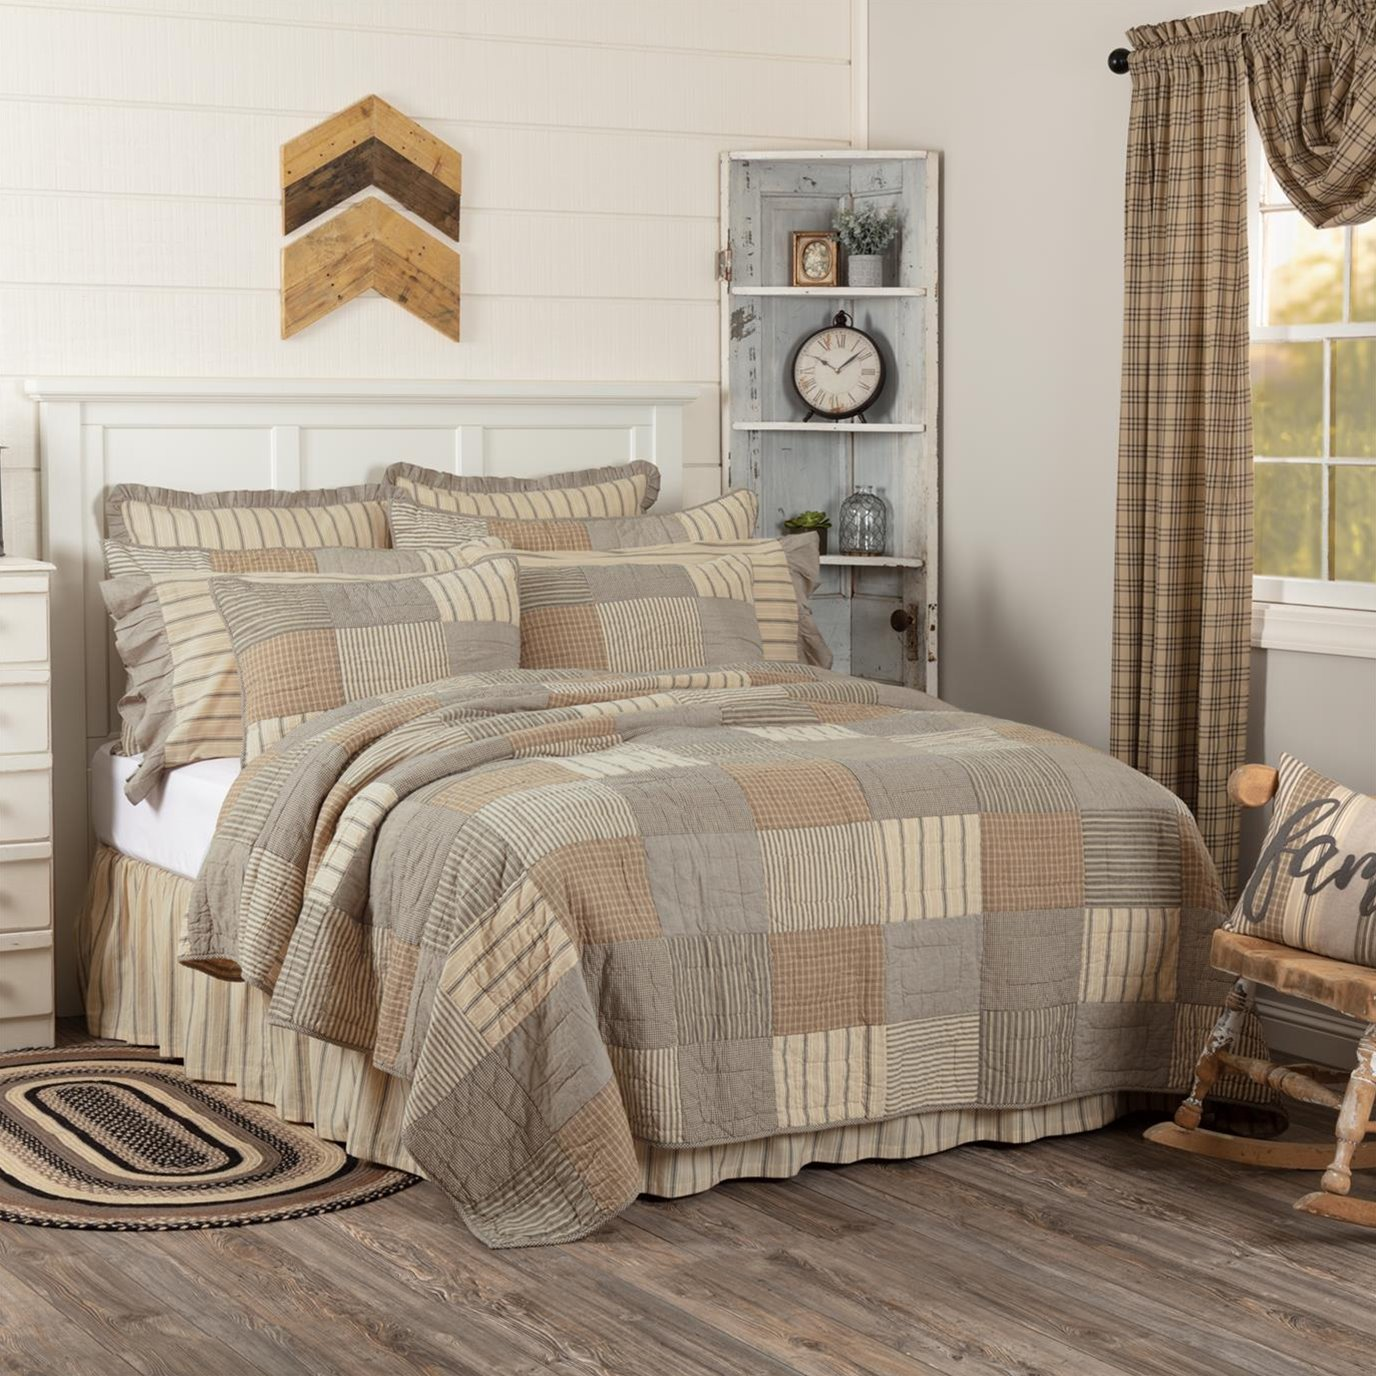 Sawyer Mill Charcoal Luxury King Quilt 120Wx105L